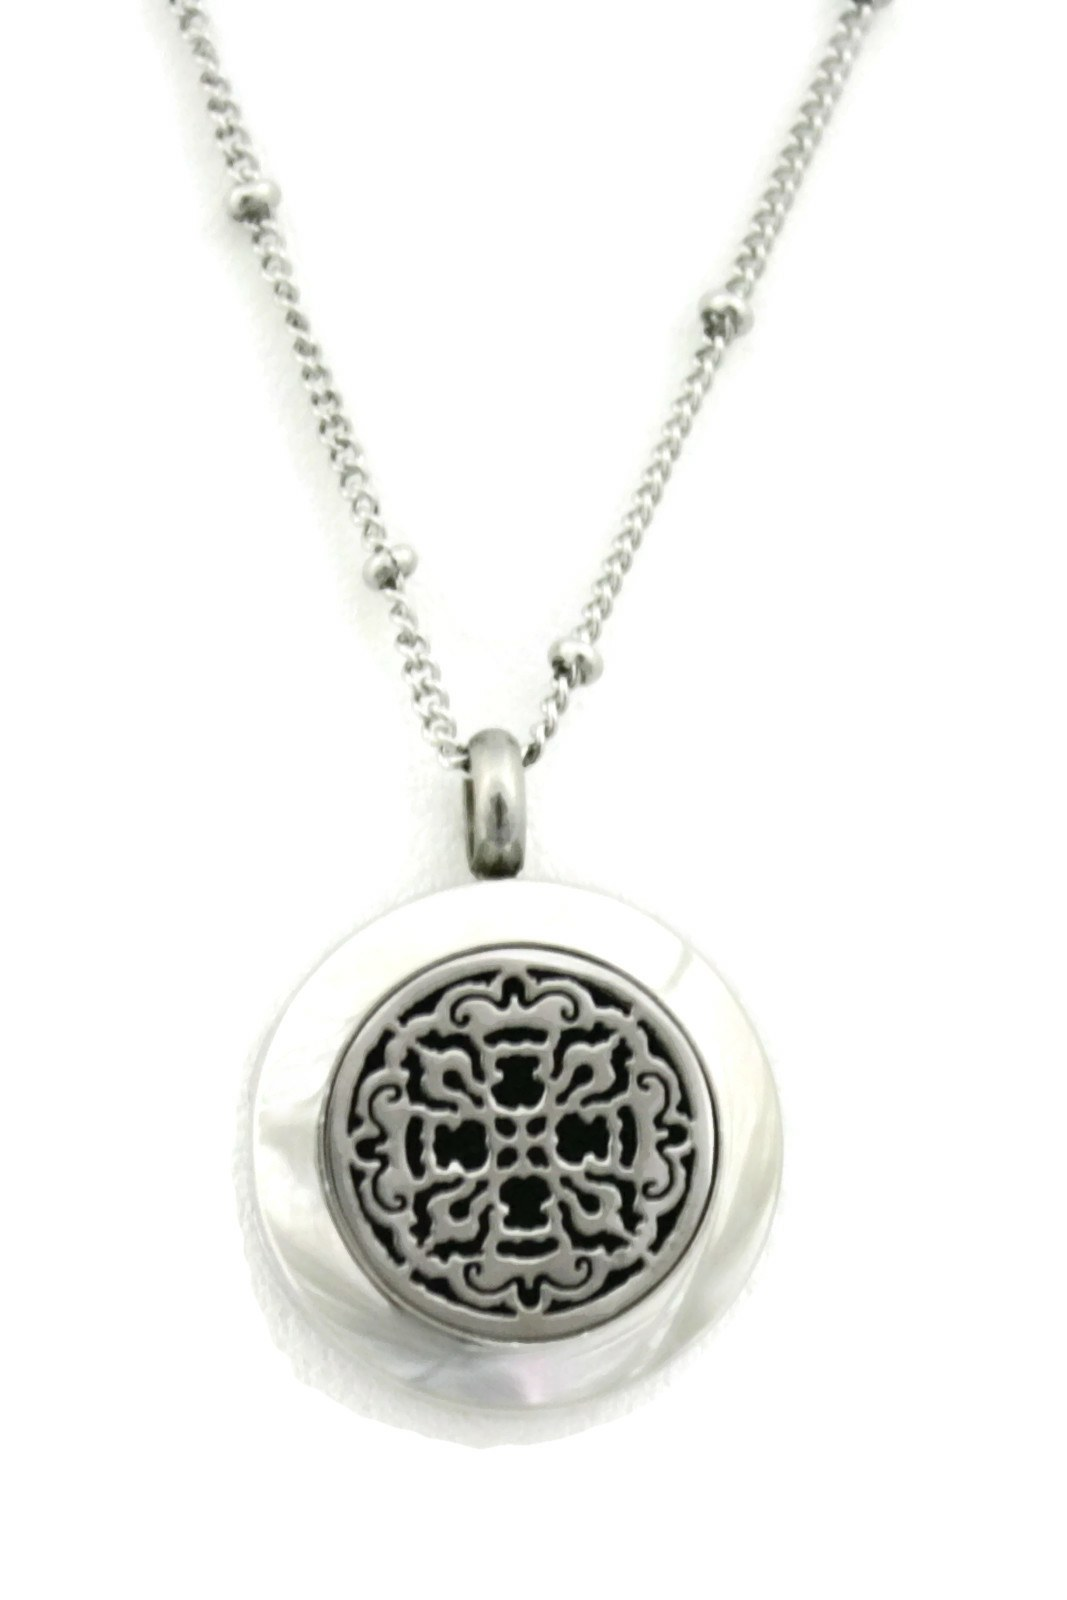 "Allure Small Silver Stainless Steel Essential Oil Diffuser Necklace- 20mm- 18""-Diffuser Necklace-Destination Oils"